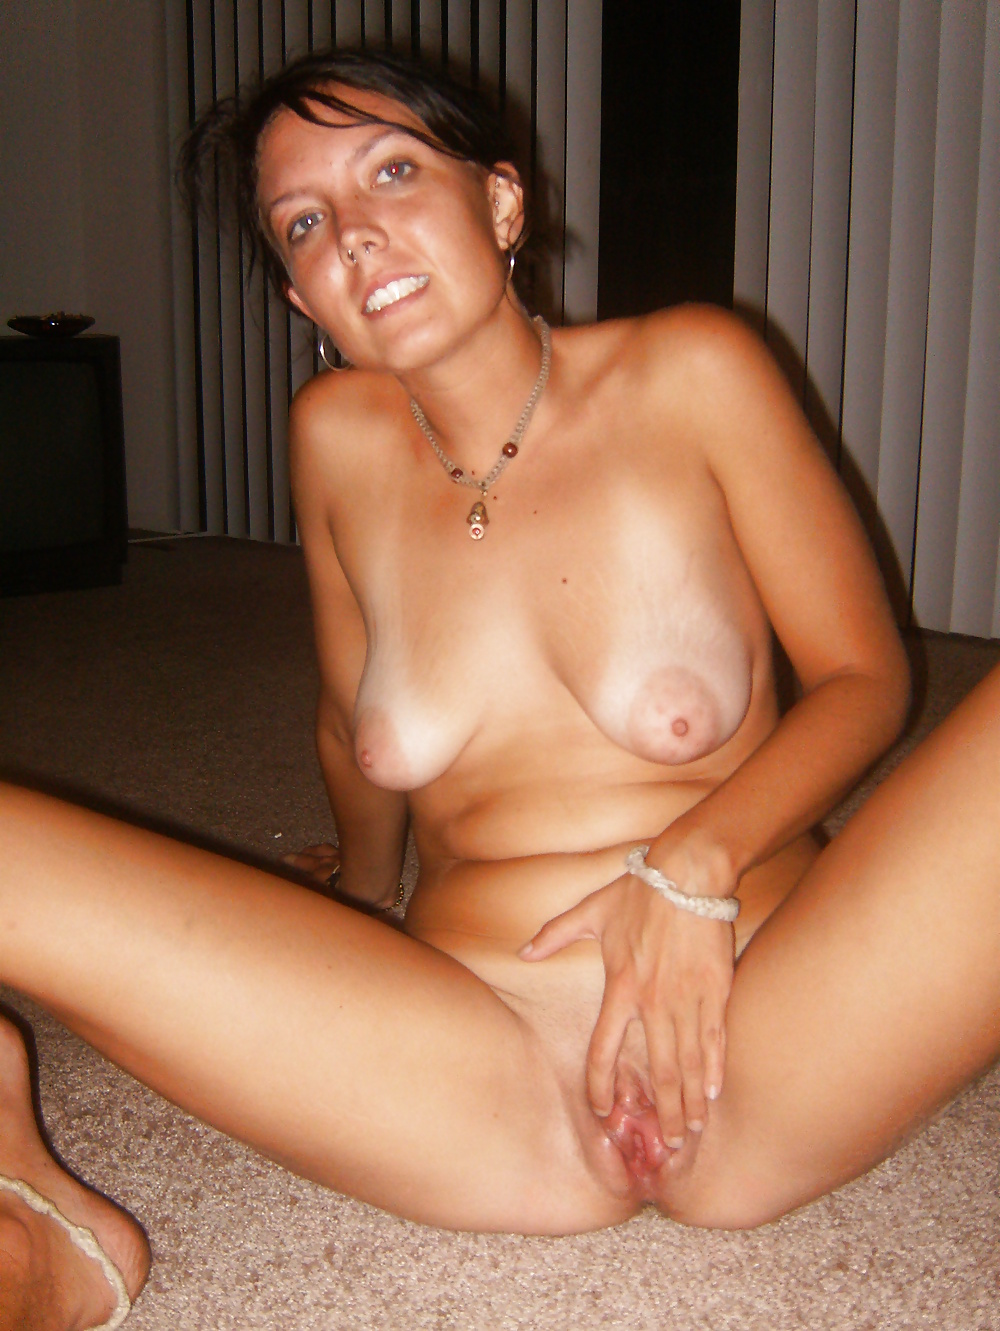 Dr laura naked photos